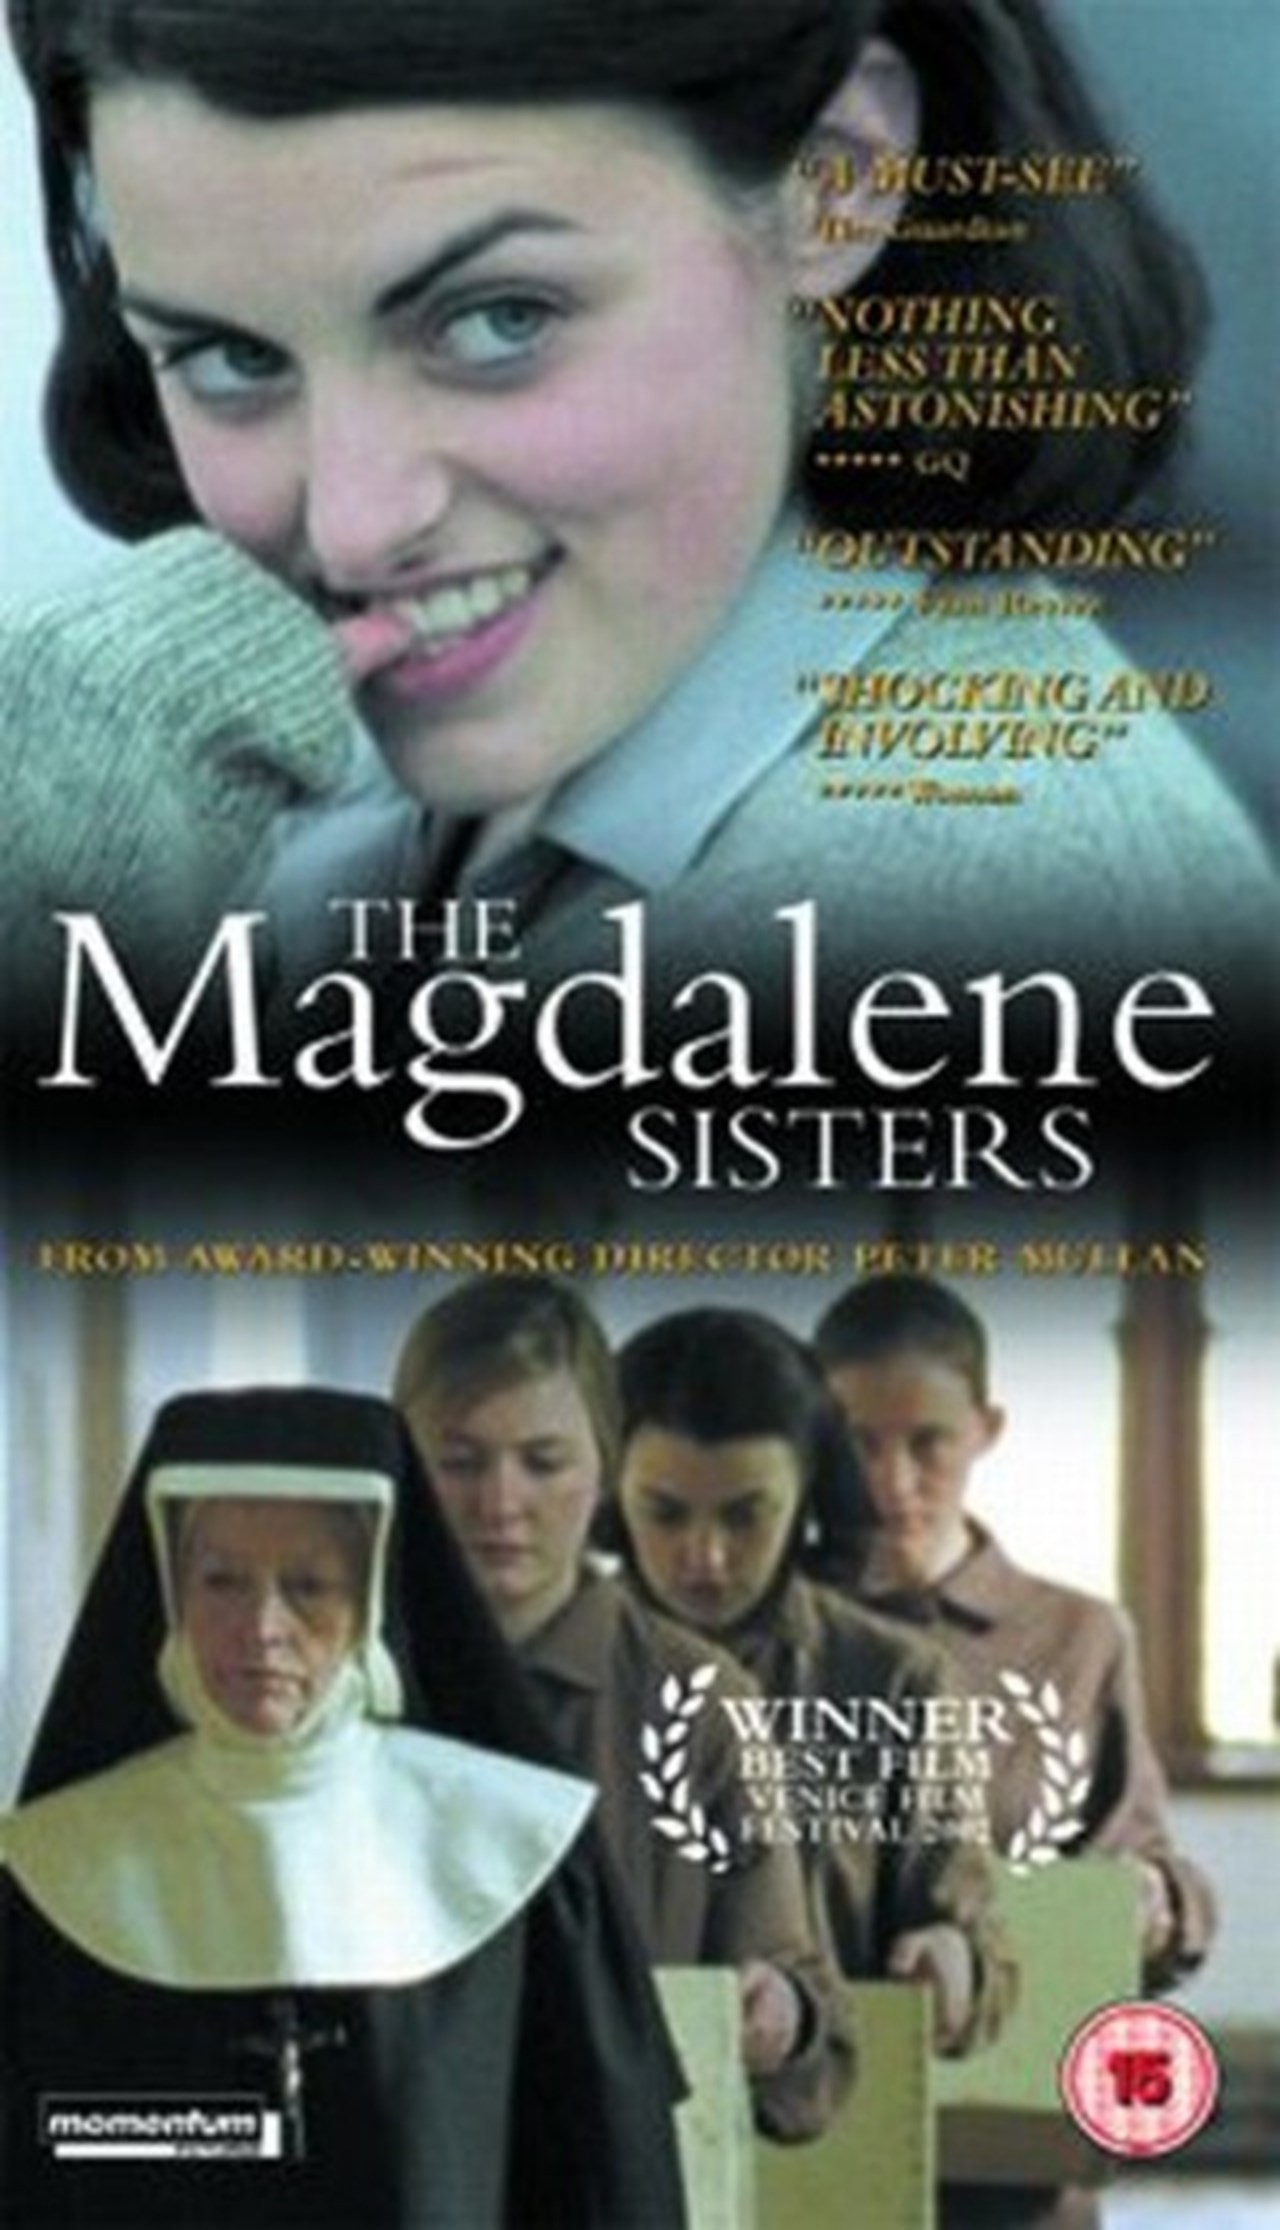 The Magdalene Sisters - 1